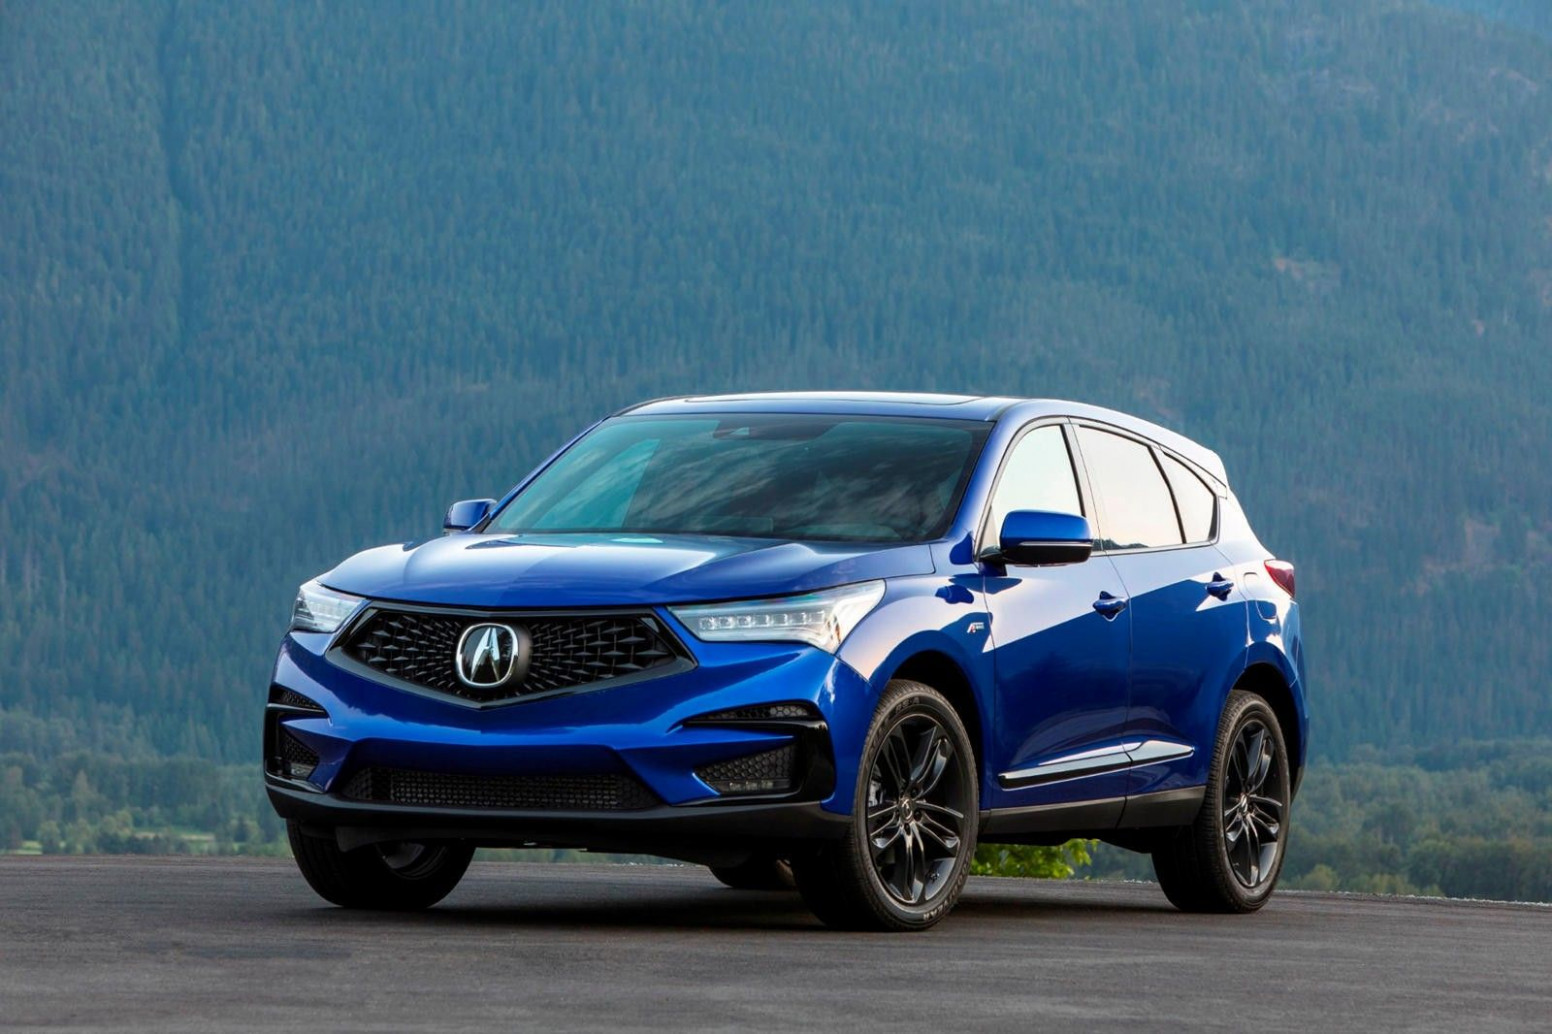 9 Acura RDX Review, Ratings, MPG and Prices | TheCarHP.com